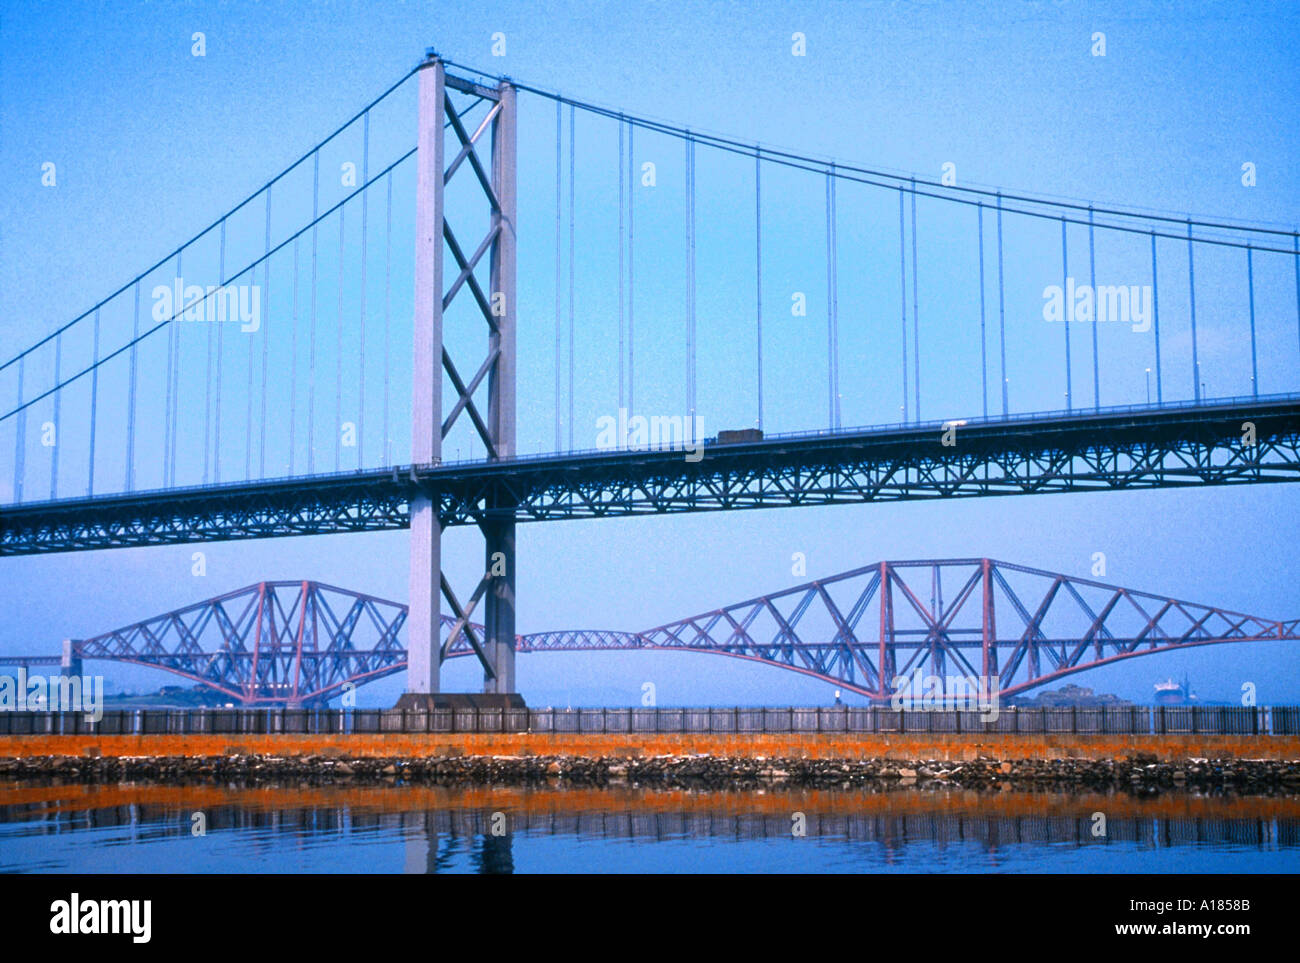 Road suspension bridge built in 1964 and the Forth Railway Bridge built in 1890 Firth of Forth Scotland UK A C Waltham - Stock Image